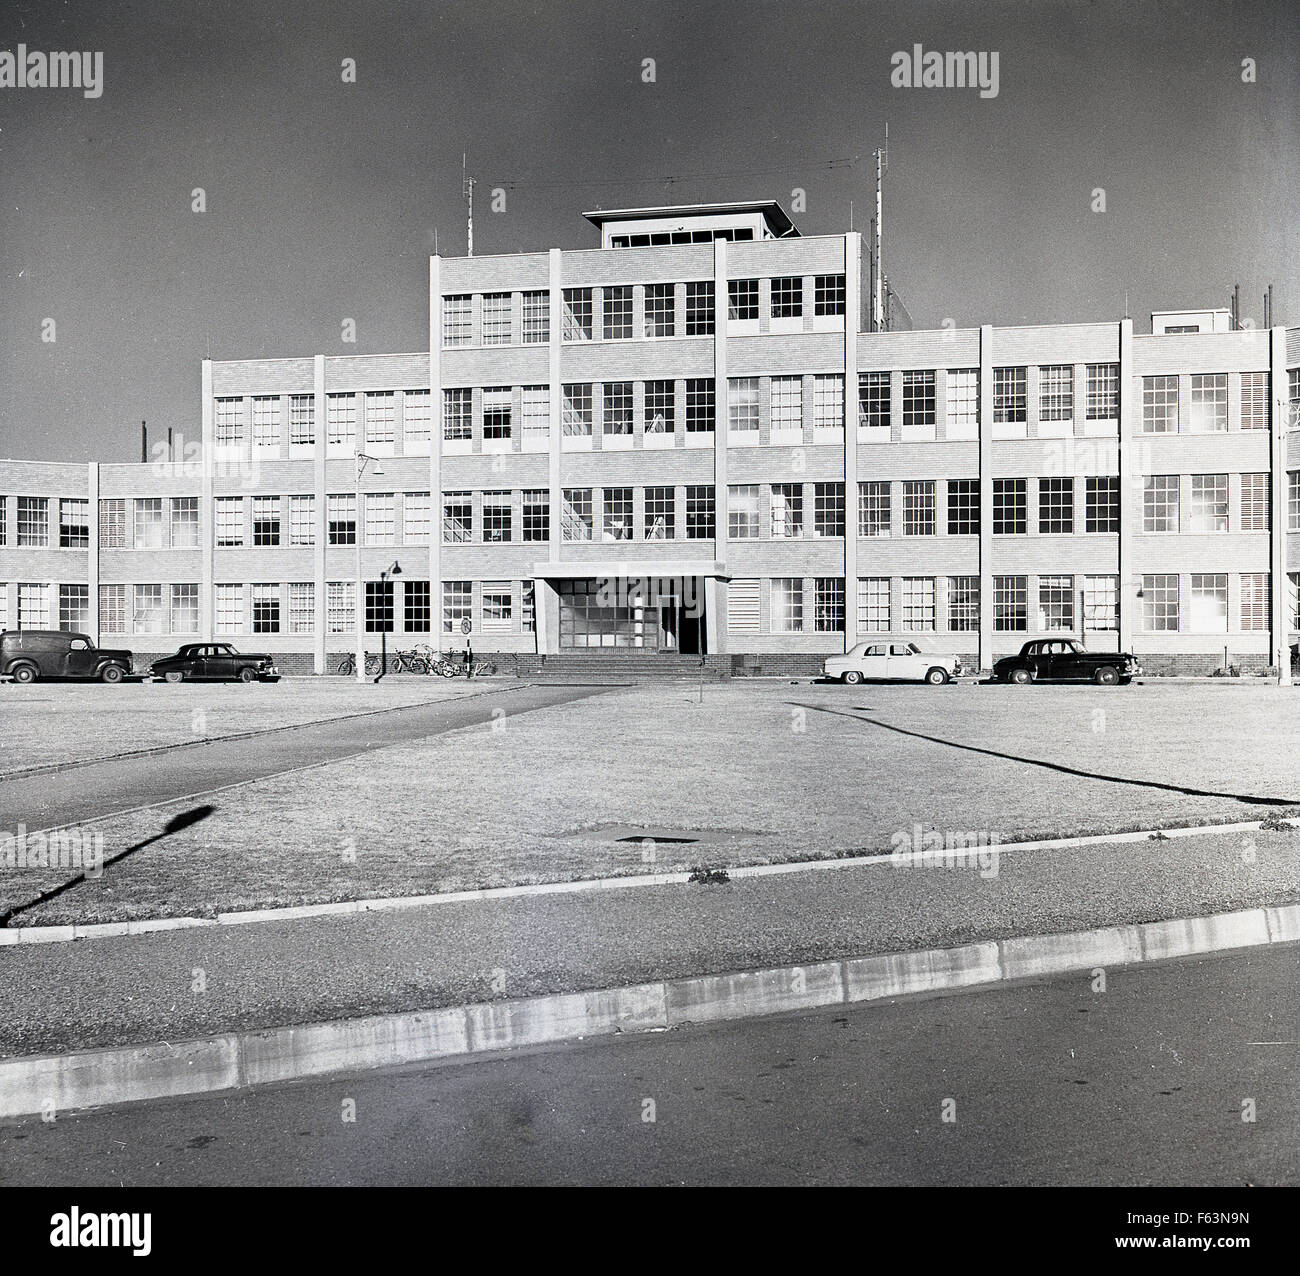 1950s historical picture showing the exterior of the Jan Smuts International airport, named after the 2nd Prime - Stock Image